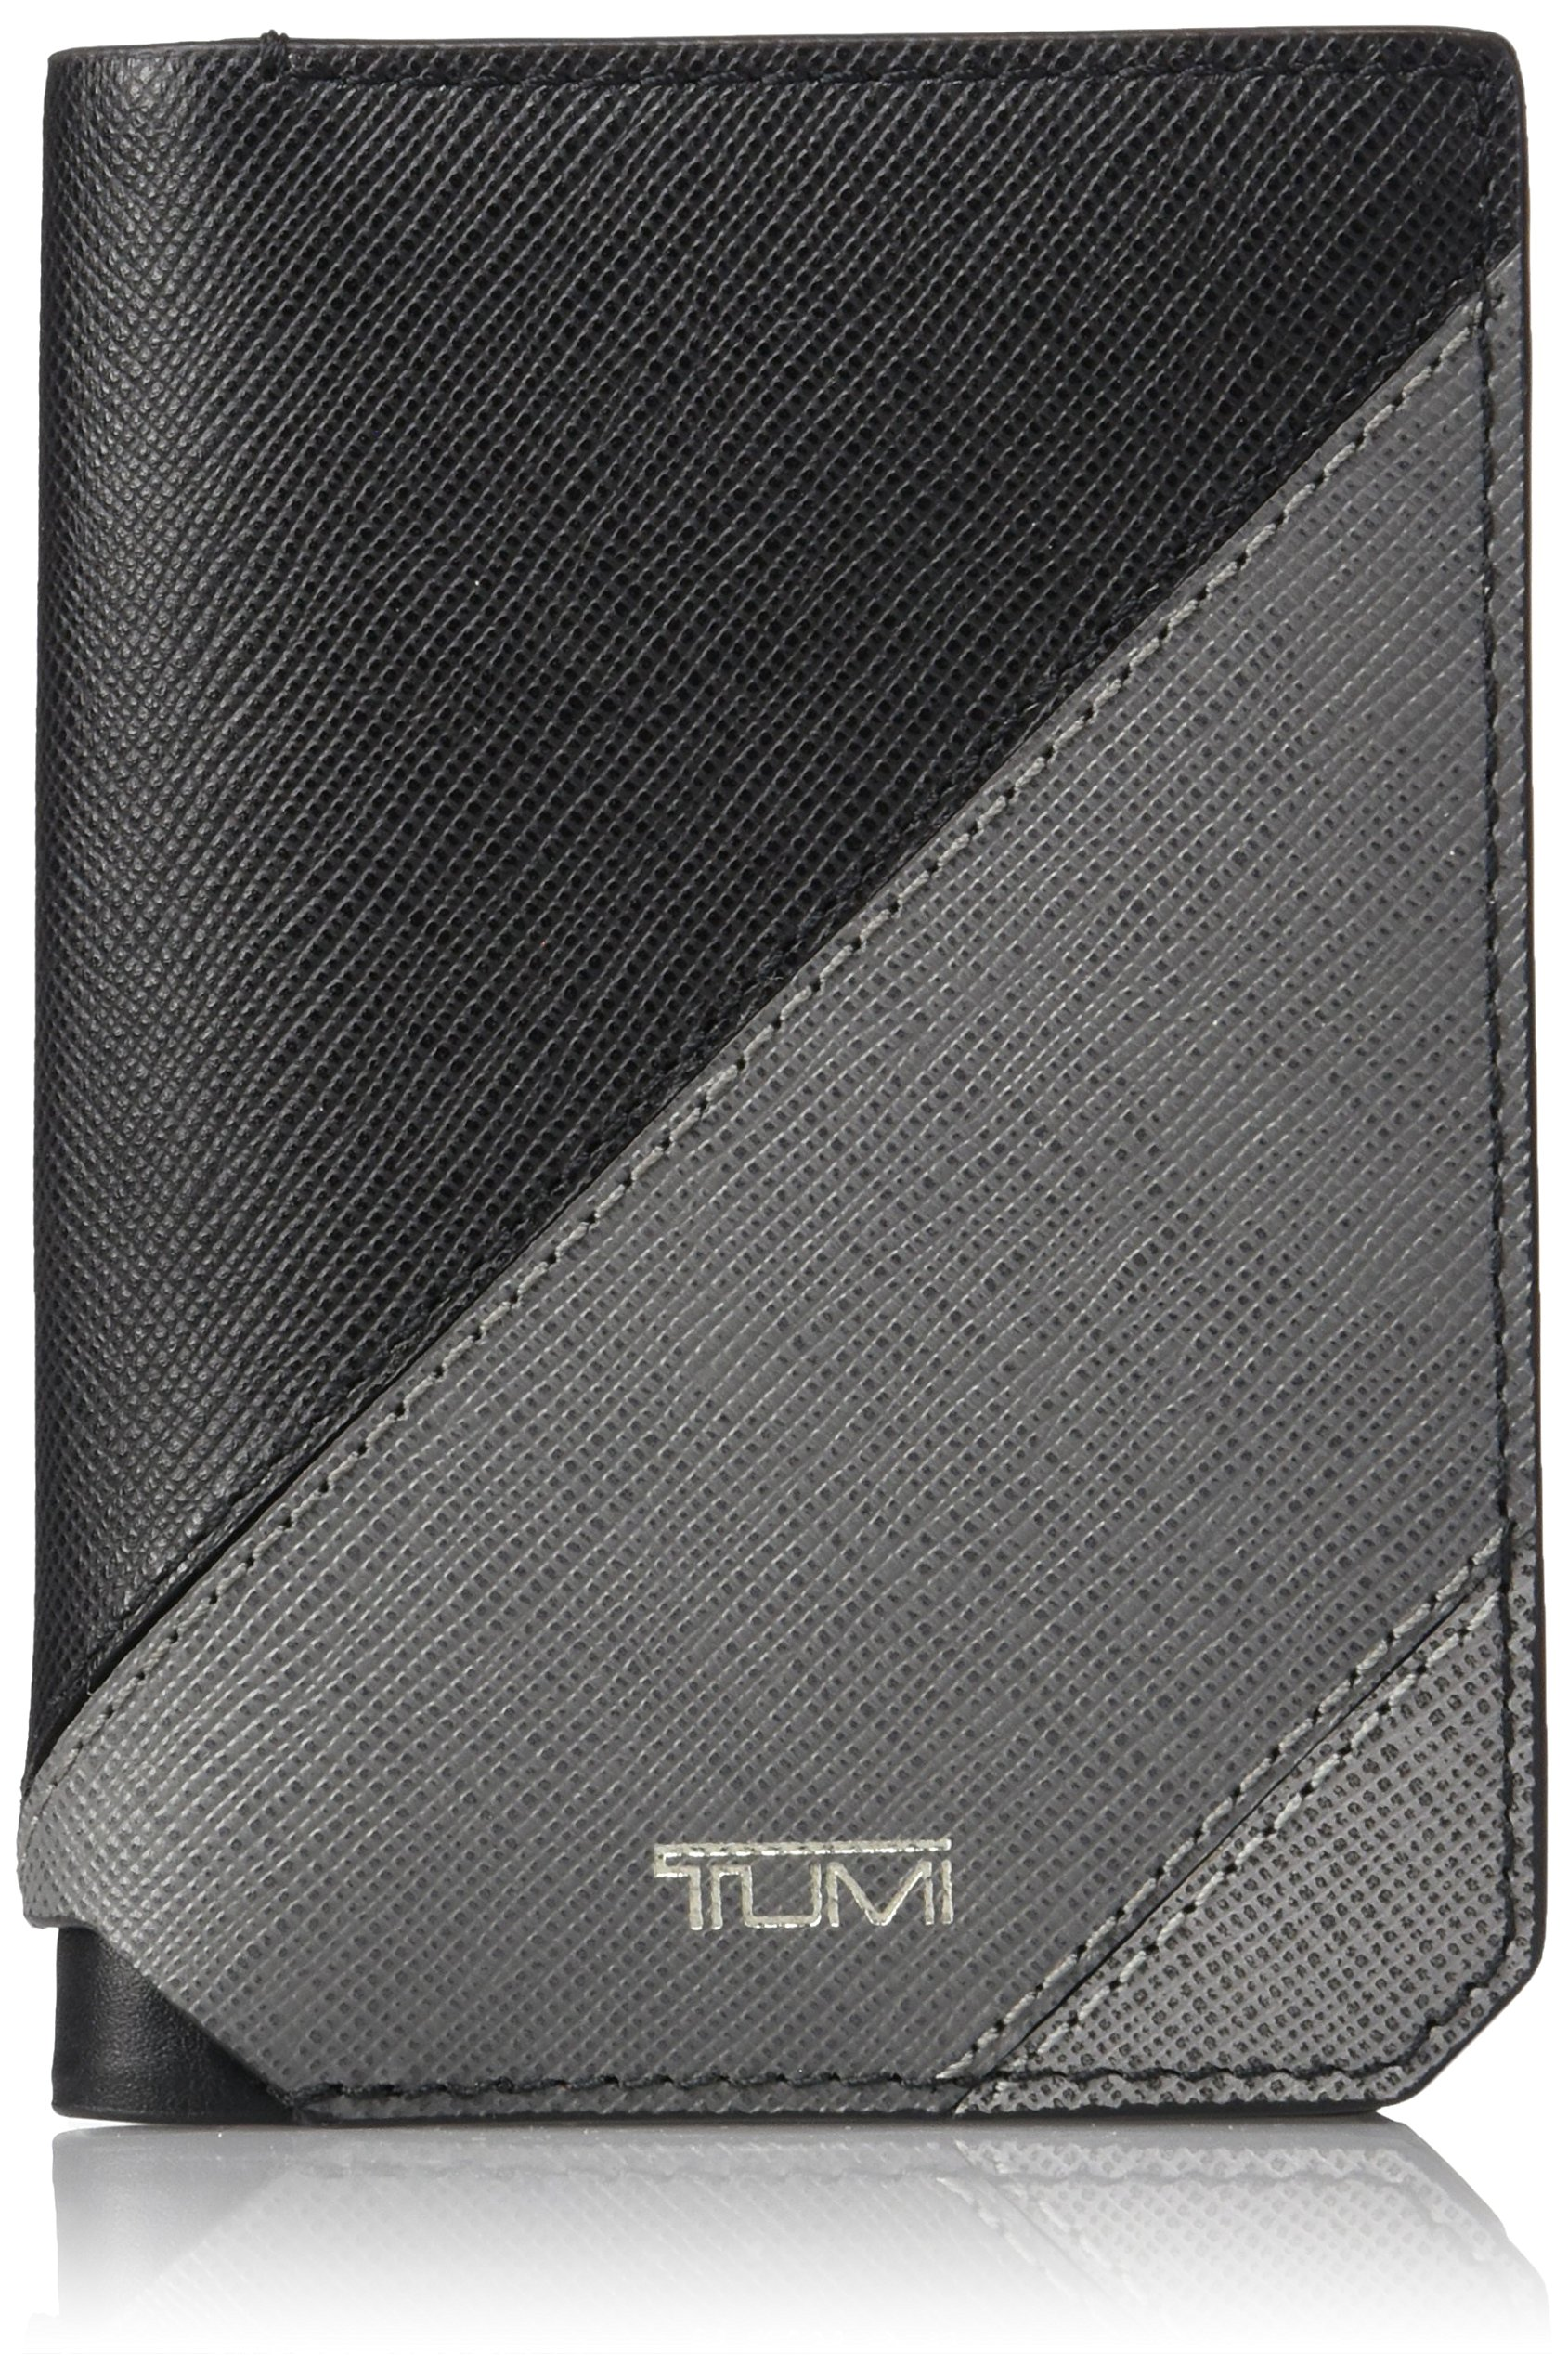 Tumi Men's Mason Gusseted Card Holder Wallet With RFID Blocking, Grey Pieced Leather, One Size